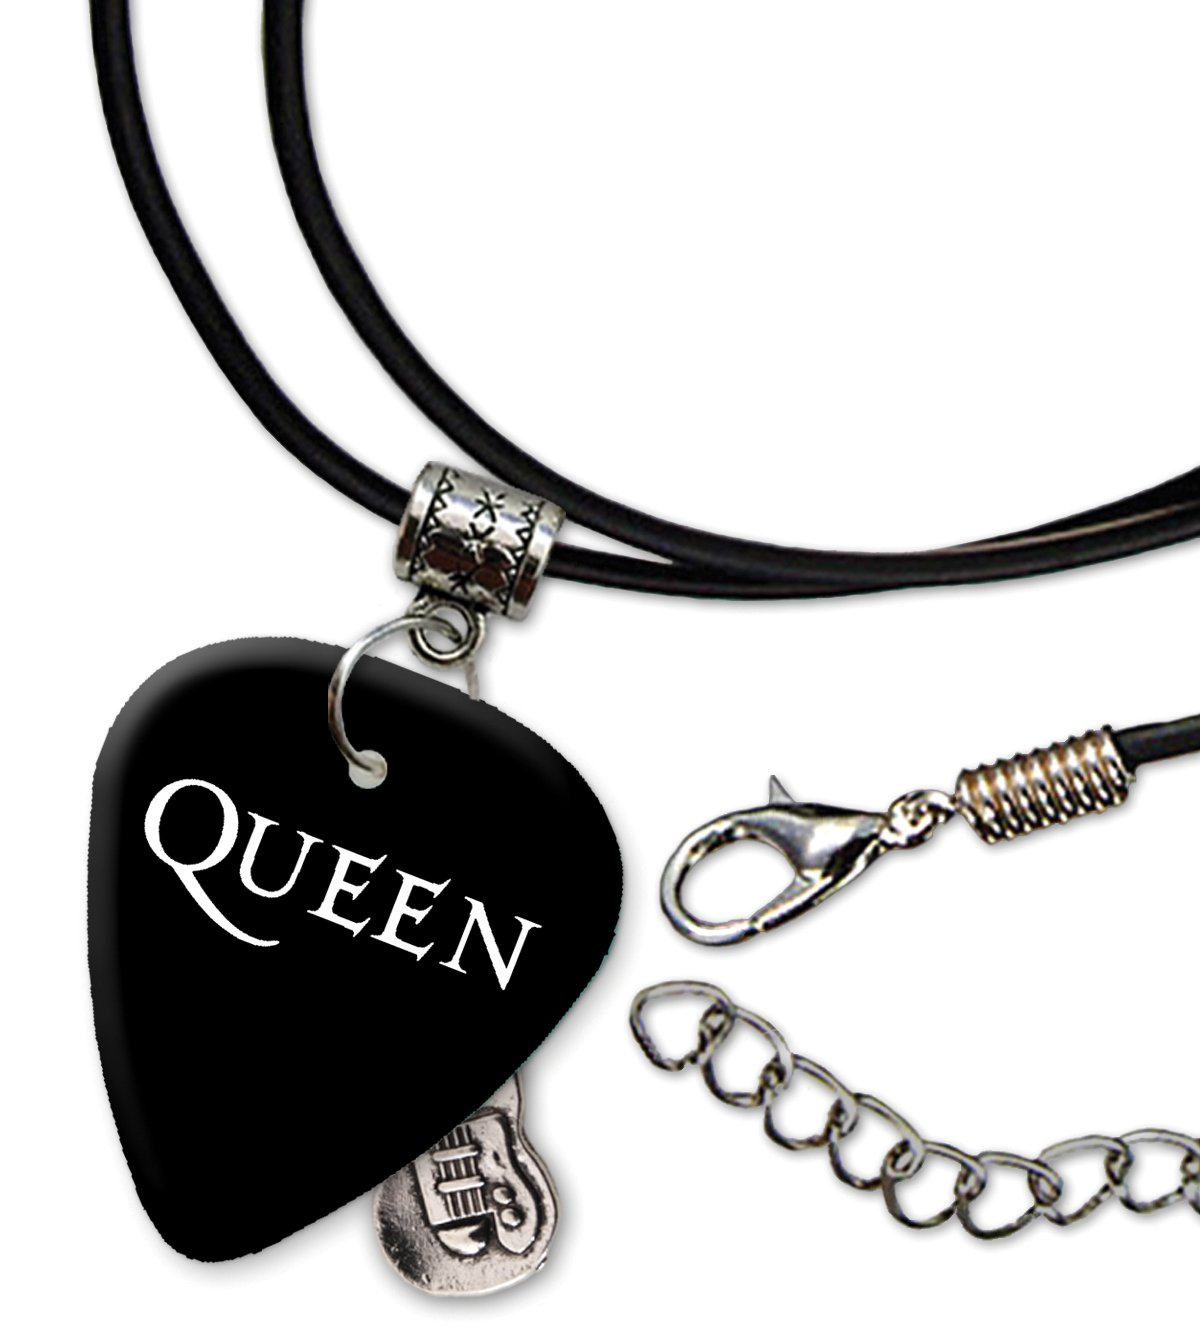 Queen Band Logo Collana di corda di chitarra plettro (H) We Love Guitars